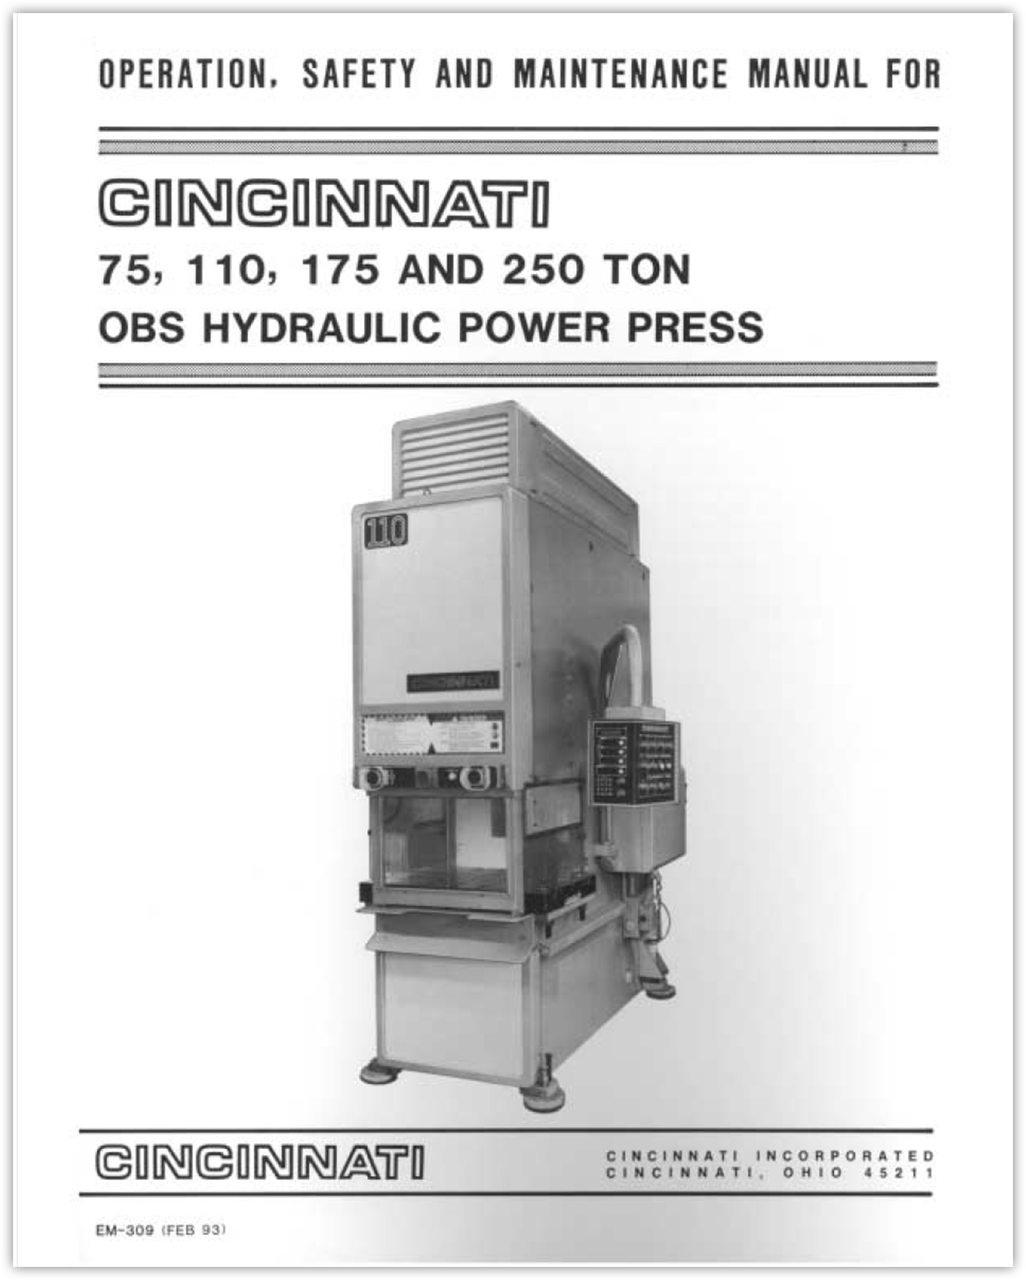 EM-309 (FEB 93) 75, 110, 175 and 250 Ton OBS Hydraulic Power Press Operation, Safety and Maintenance Manual